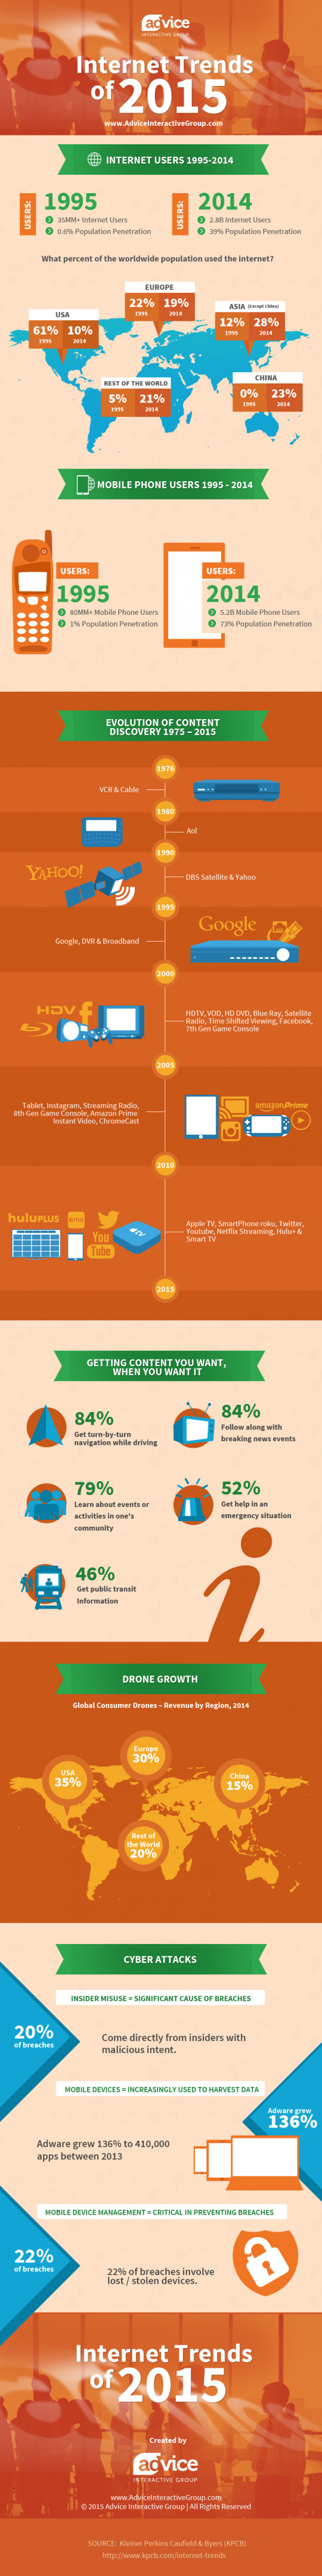 Internet Trends of 2015 Infographic